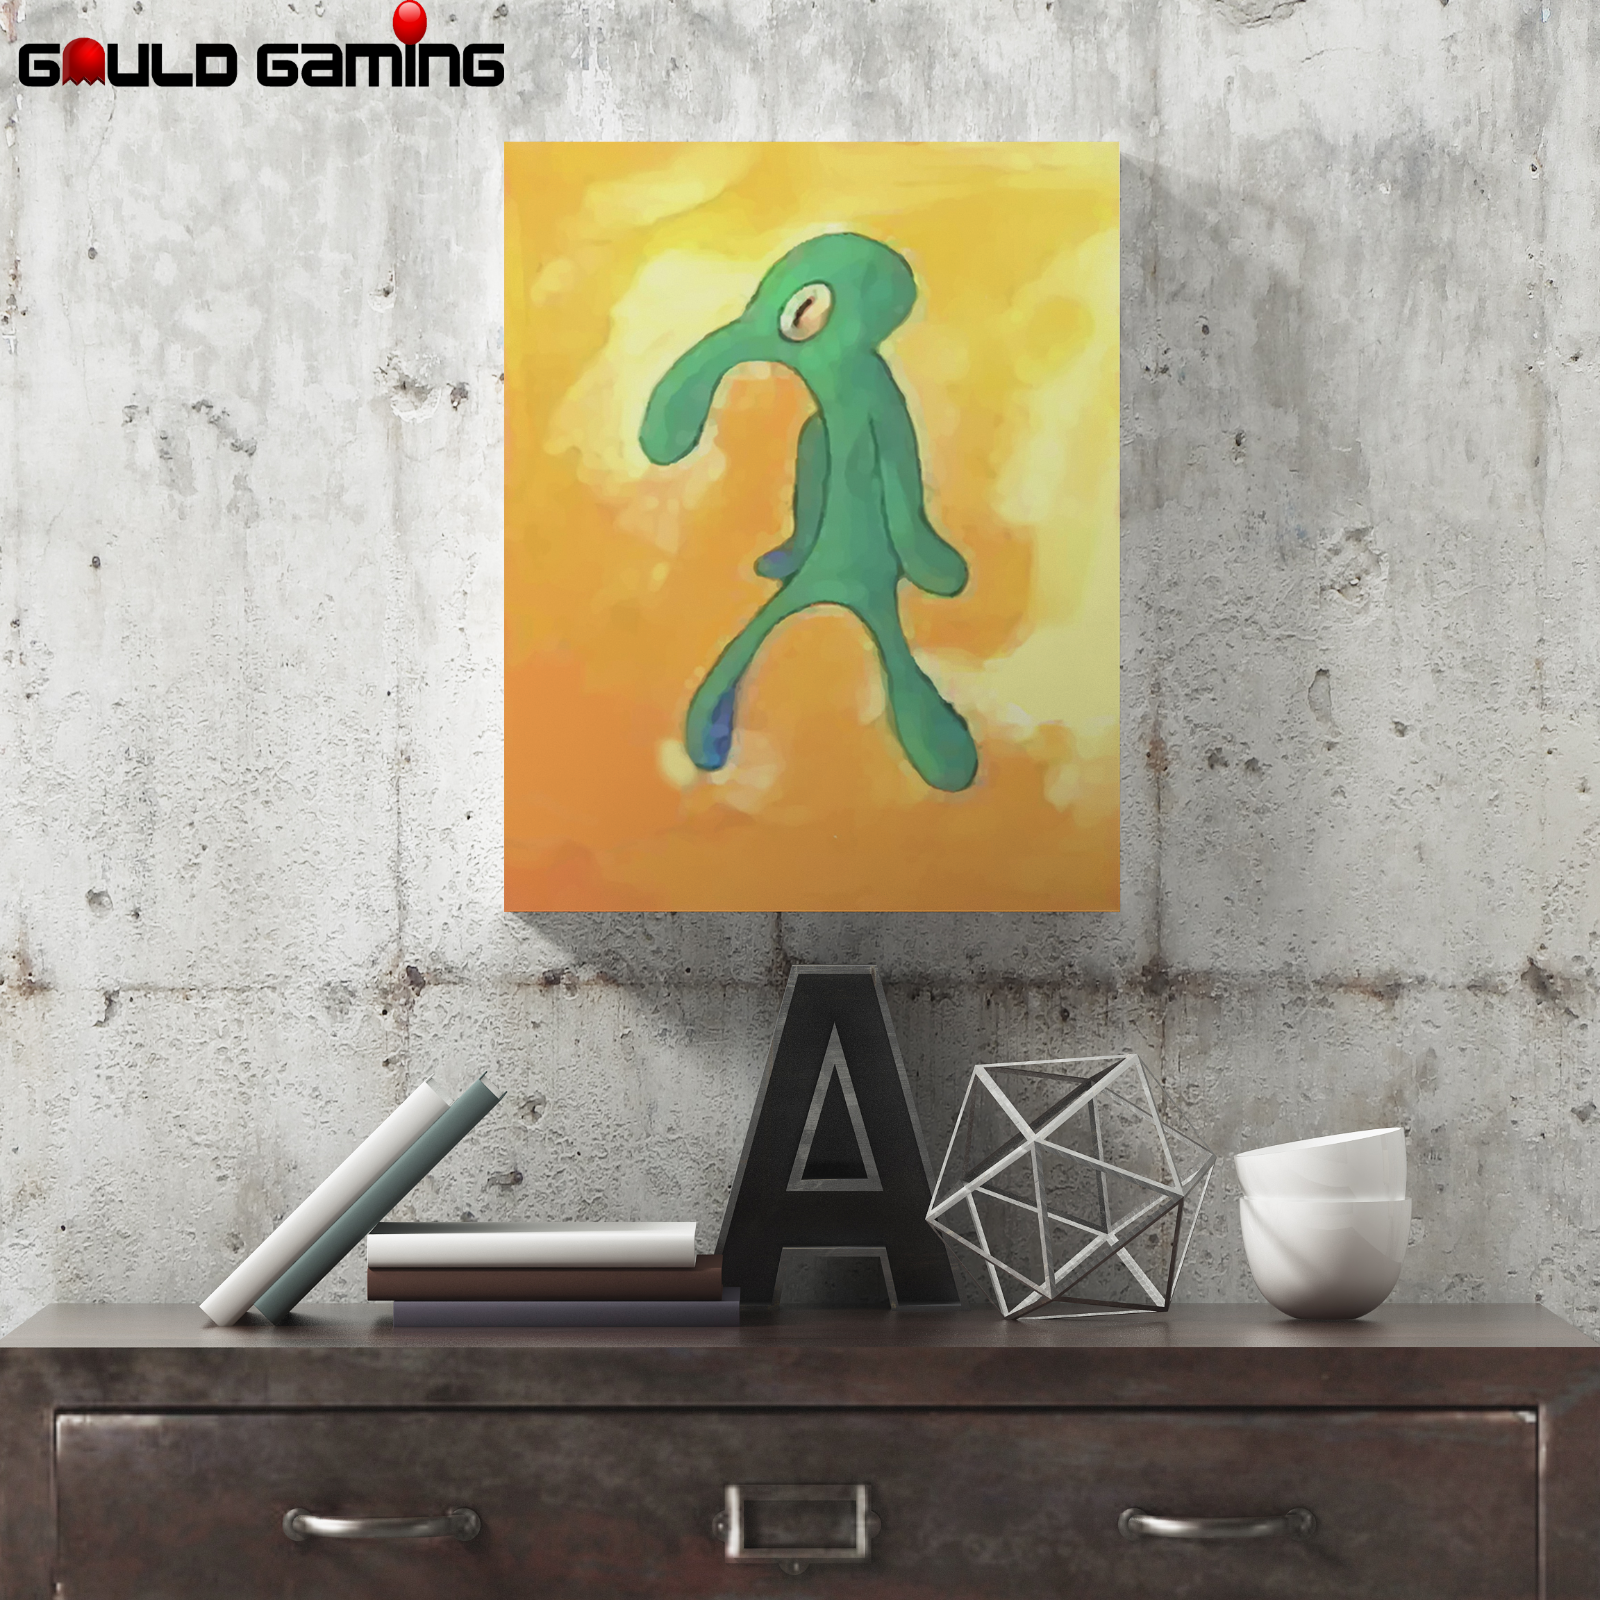 Bold and Brash Squidward Canvas Art Painting Wall Prints Decor Gifts Spongebob 2